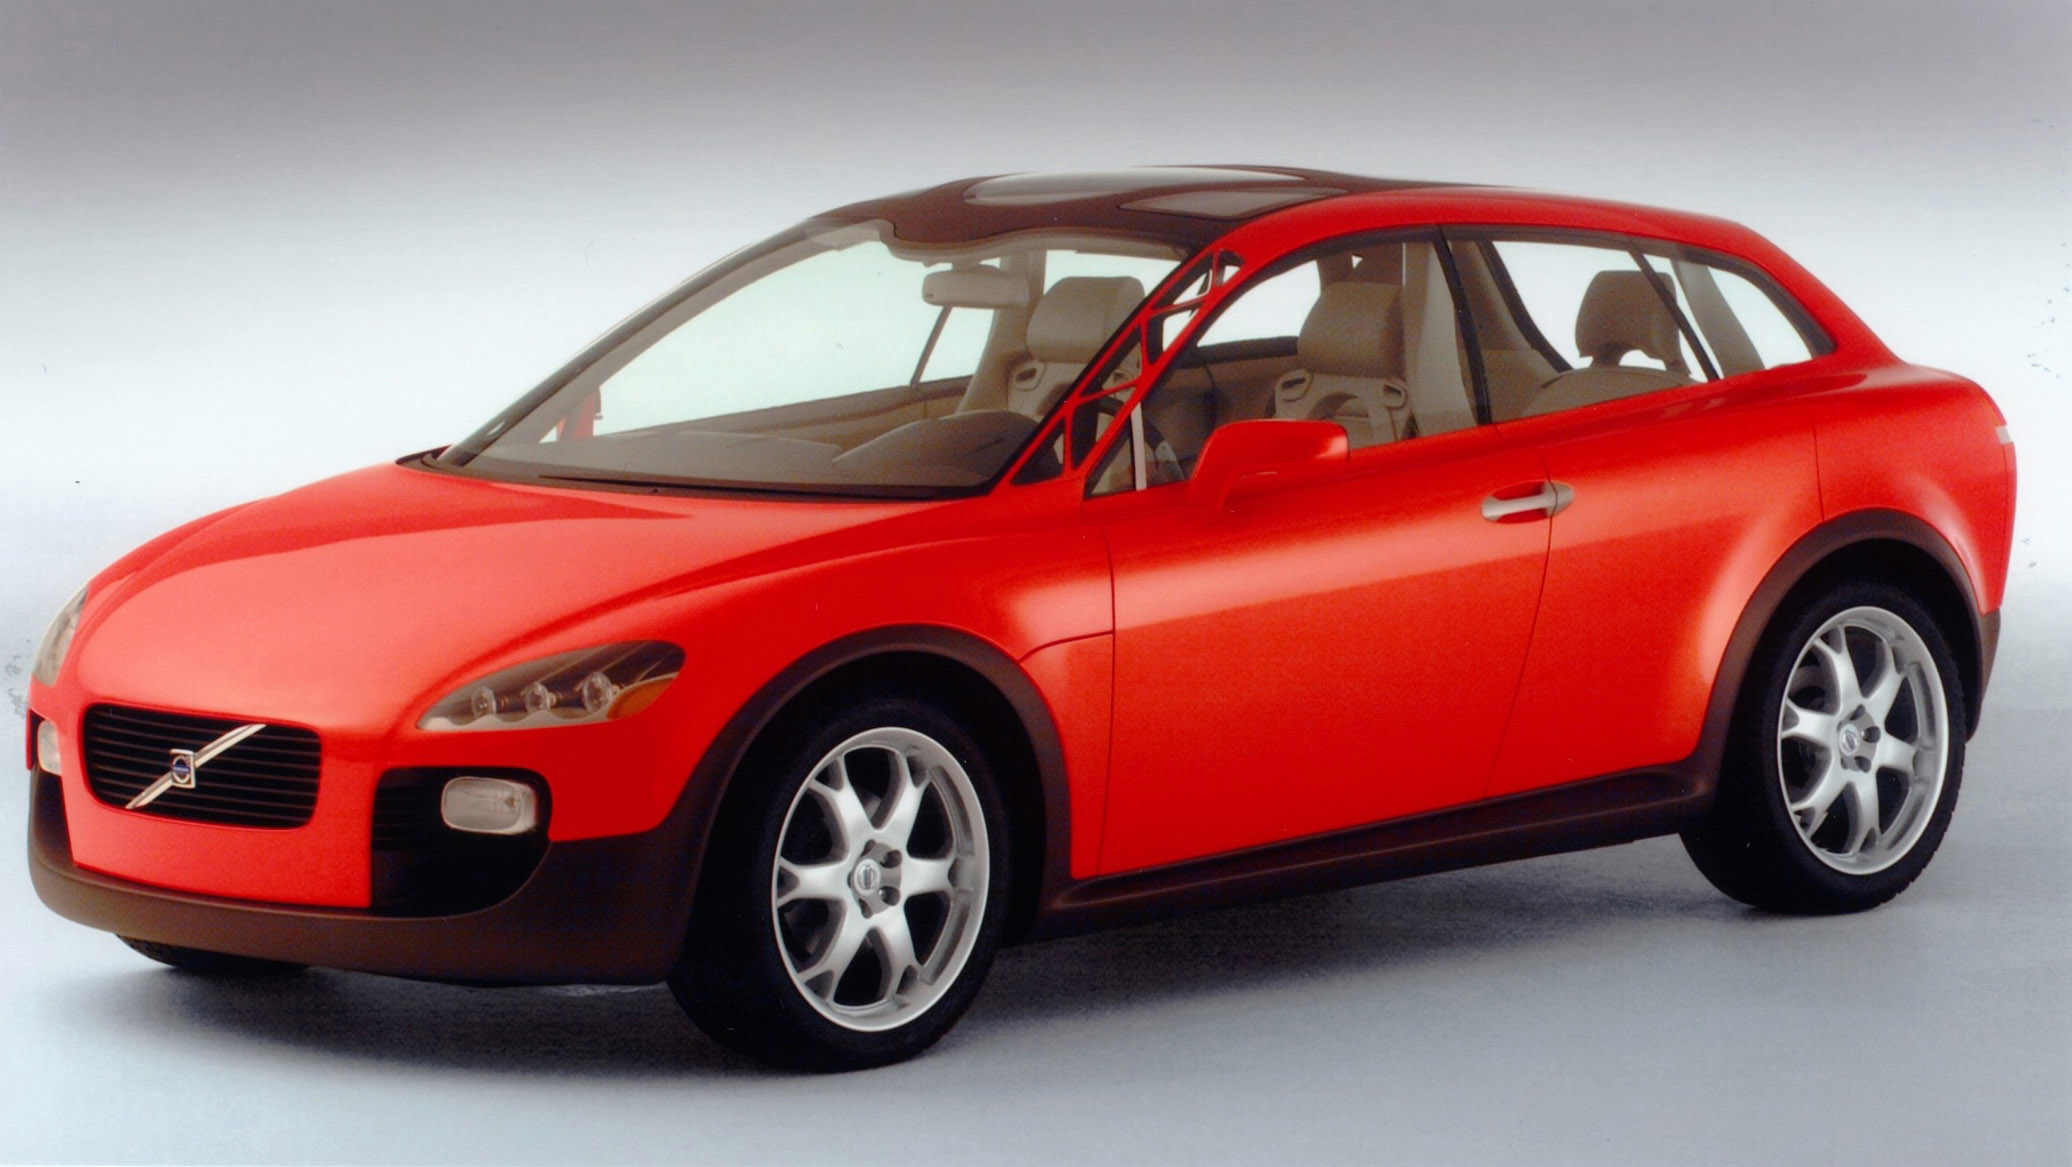 Volvo Safety Concept Car 2001 Picture 35810